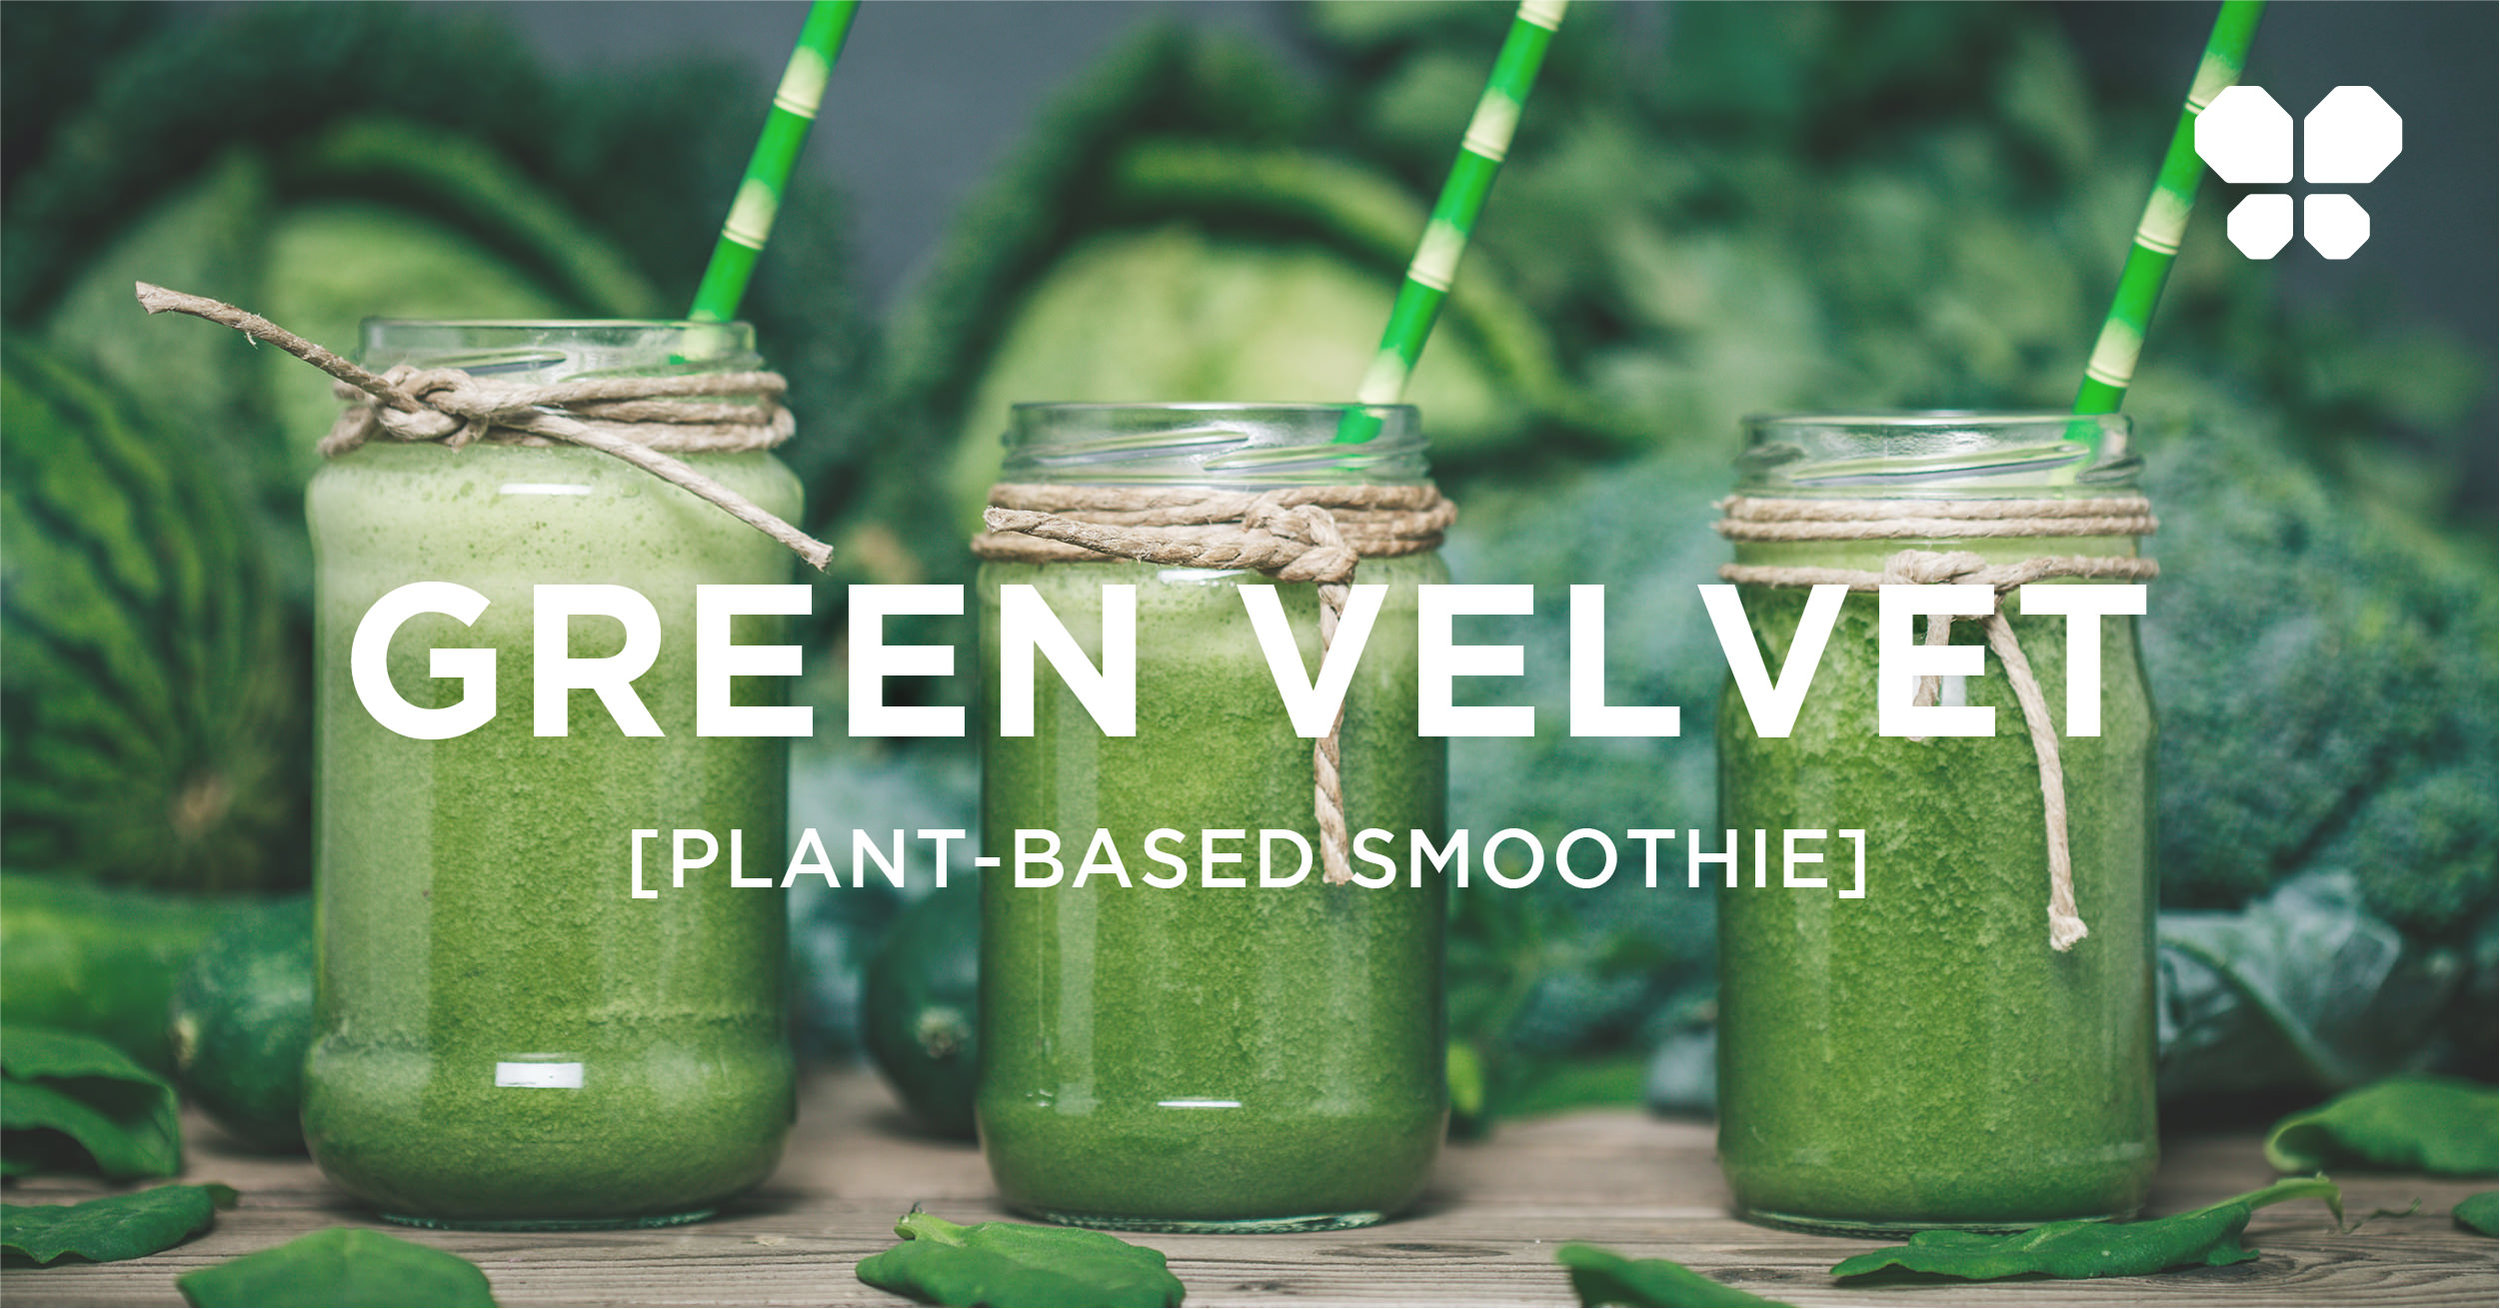 Green plant-based smoothie. Vegan juice with kale, cucumber, spinach, pineapple, ginger, celery and lemons.